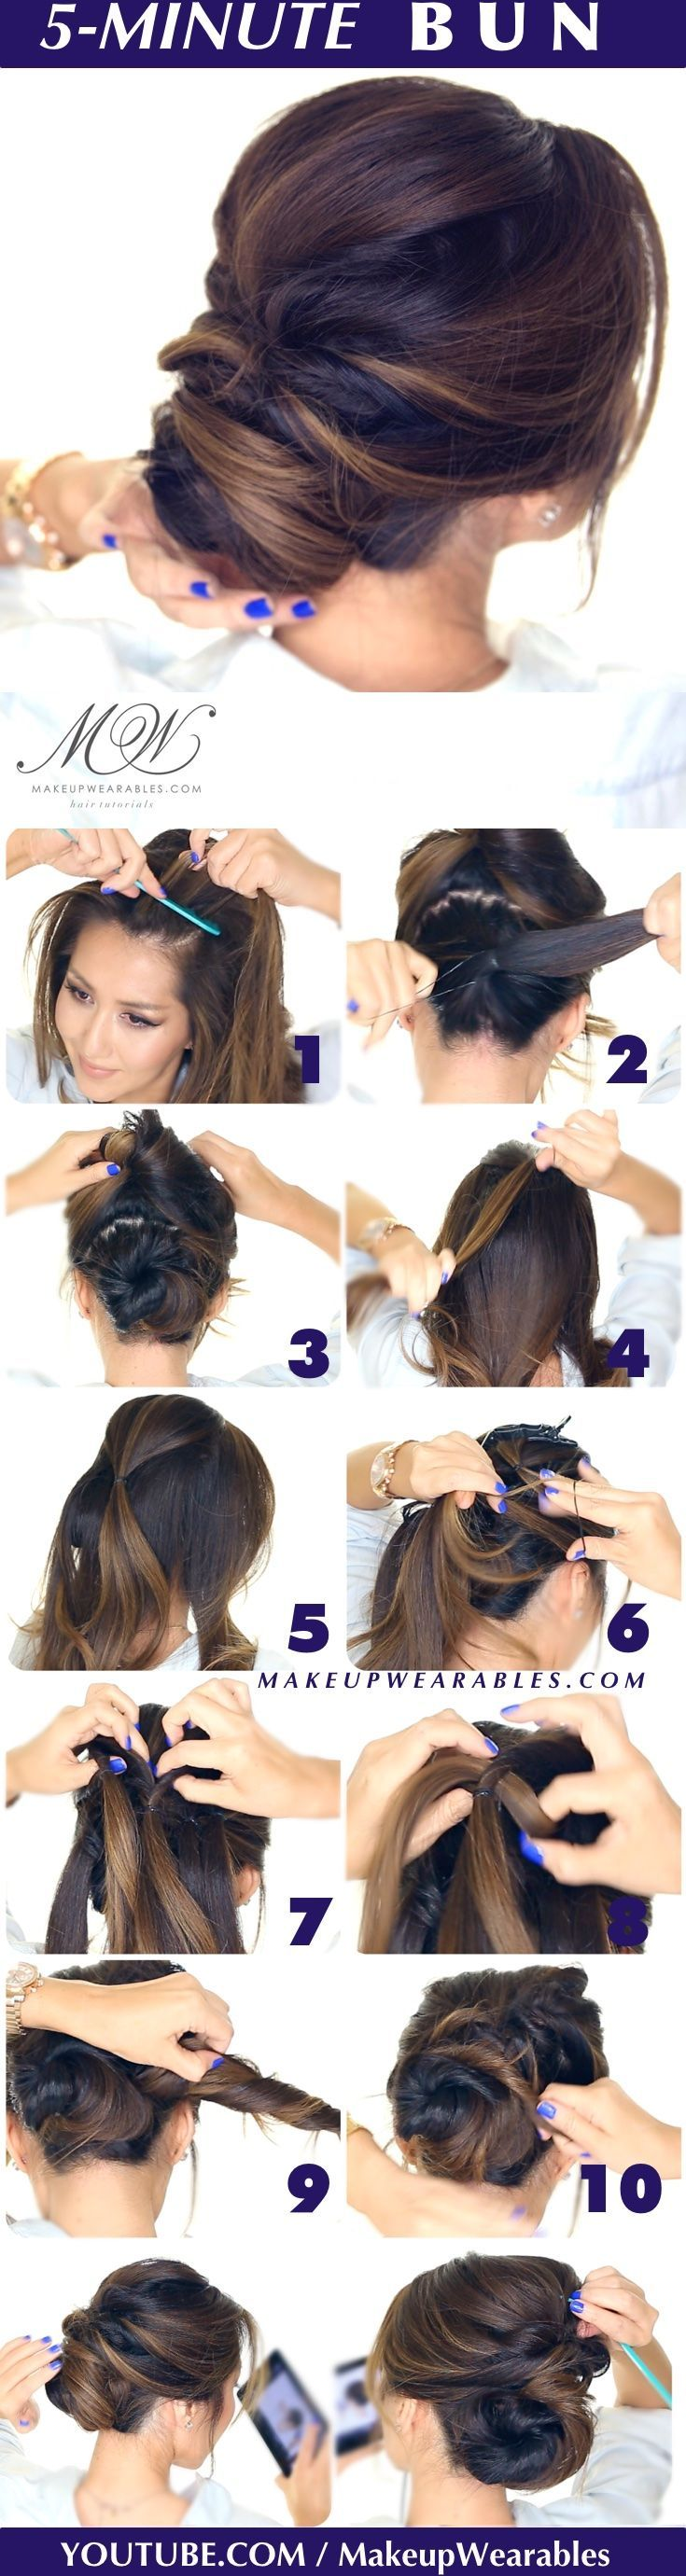 25 best hairstyles images on Pinterest